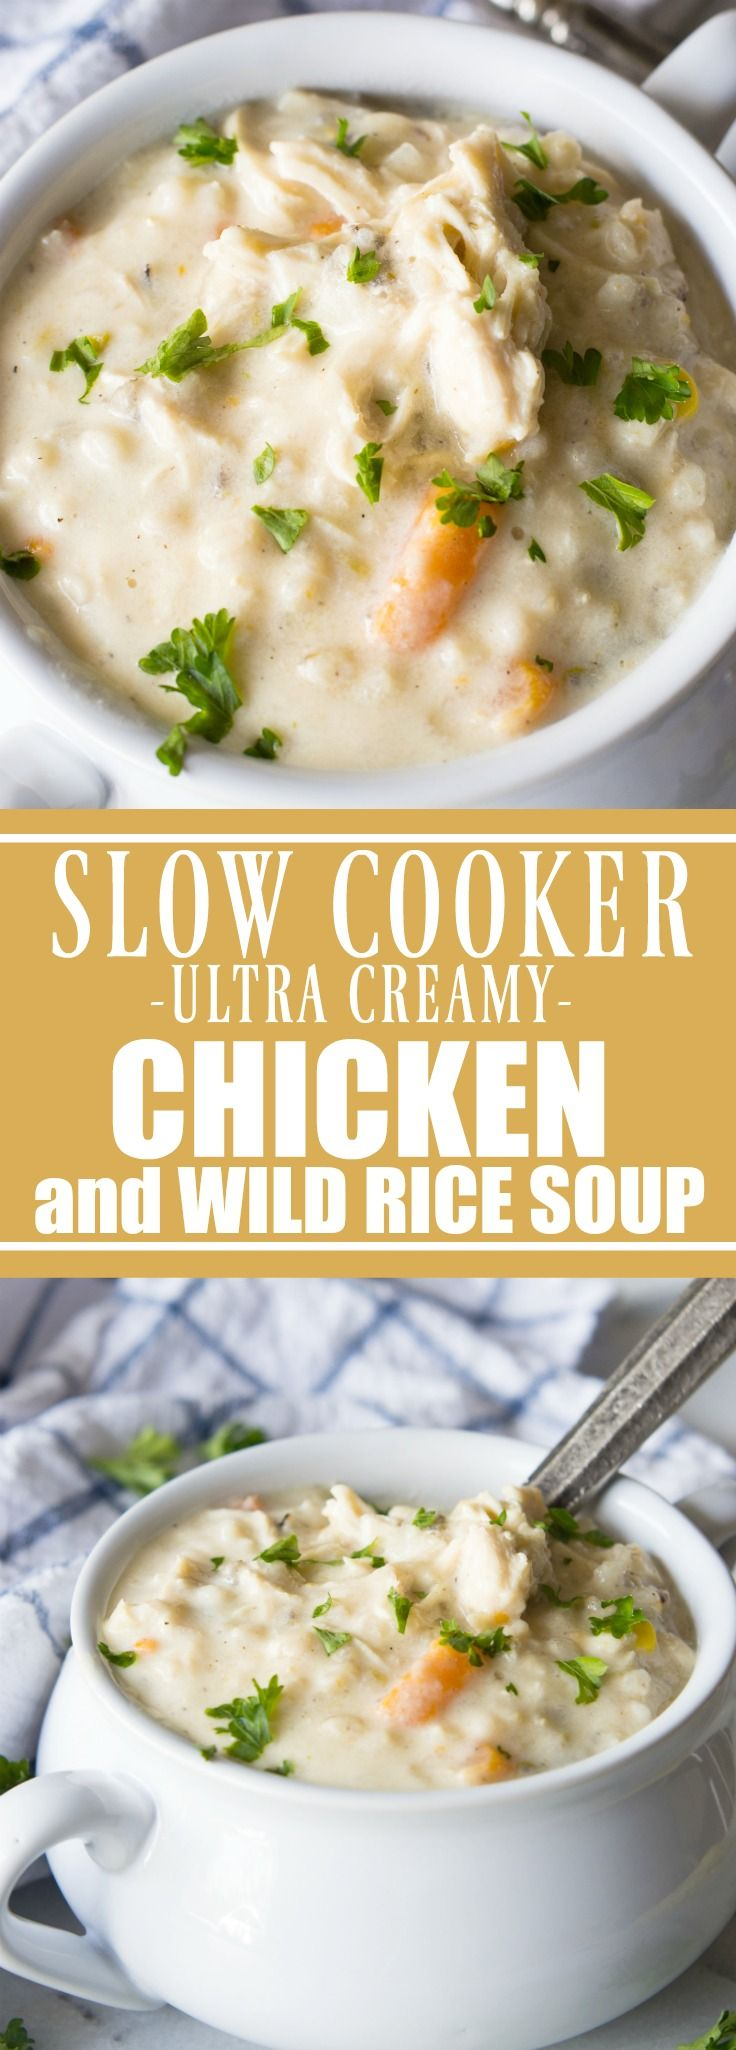 Slow Cooker Creamy Chicken and Wild Rice Soup!  This soup is ultra creamy, ultra flavorful, and best part?  There's no actual cream or butter used! This is the perfect lighter version of a classic comfort food.